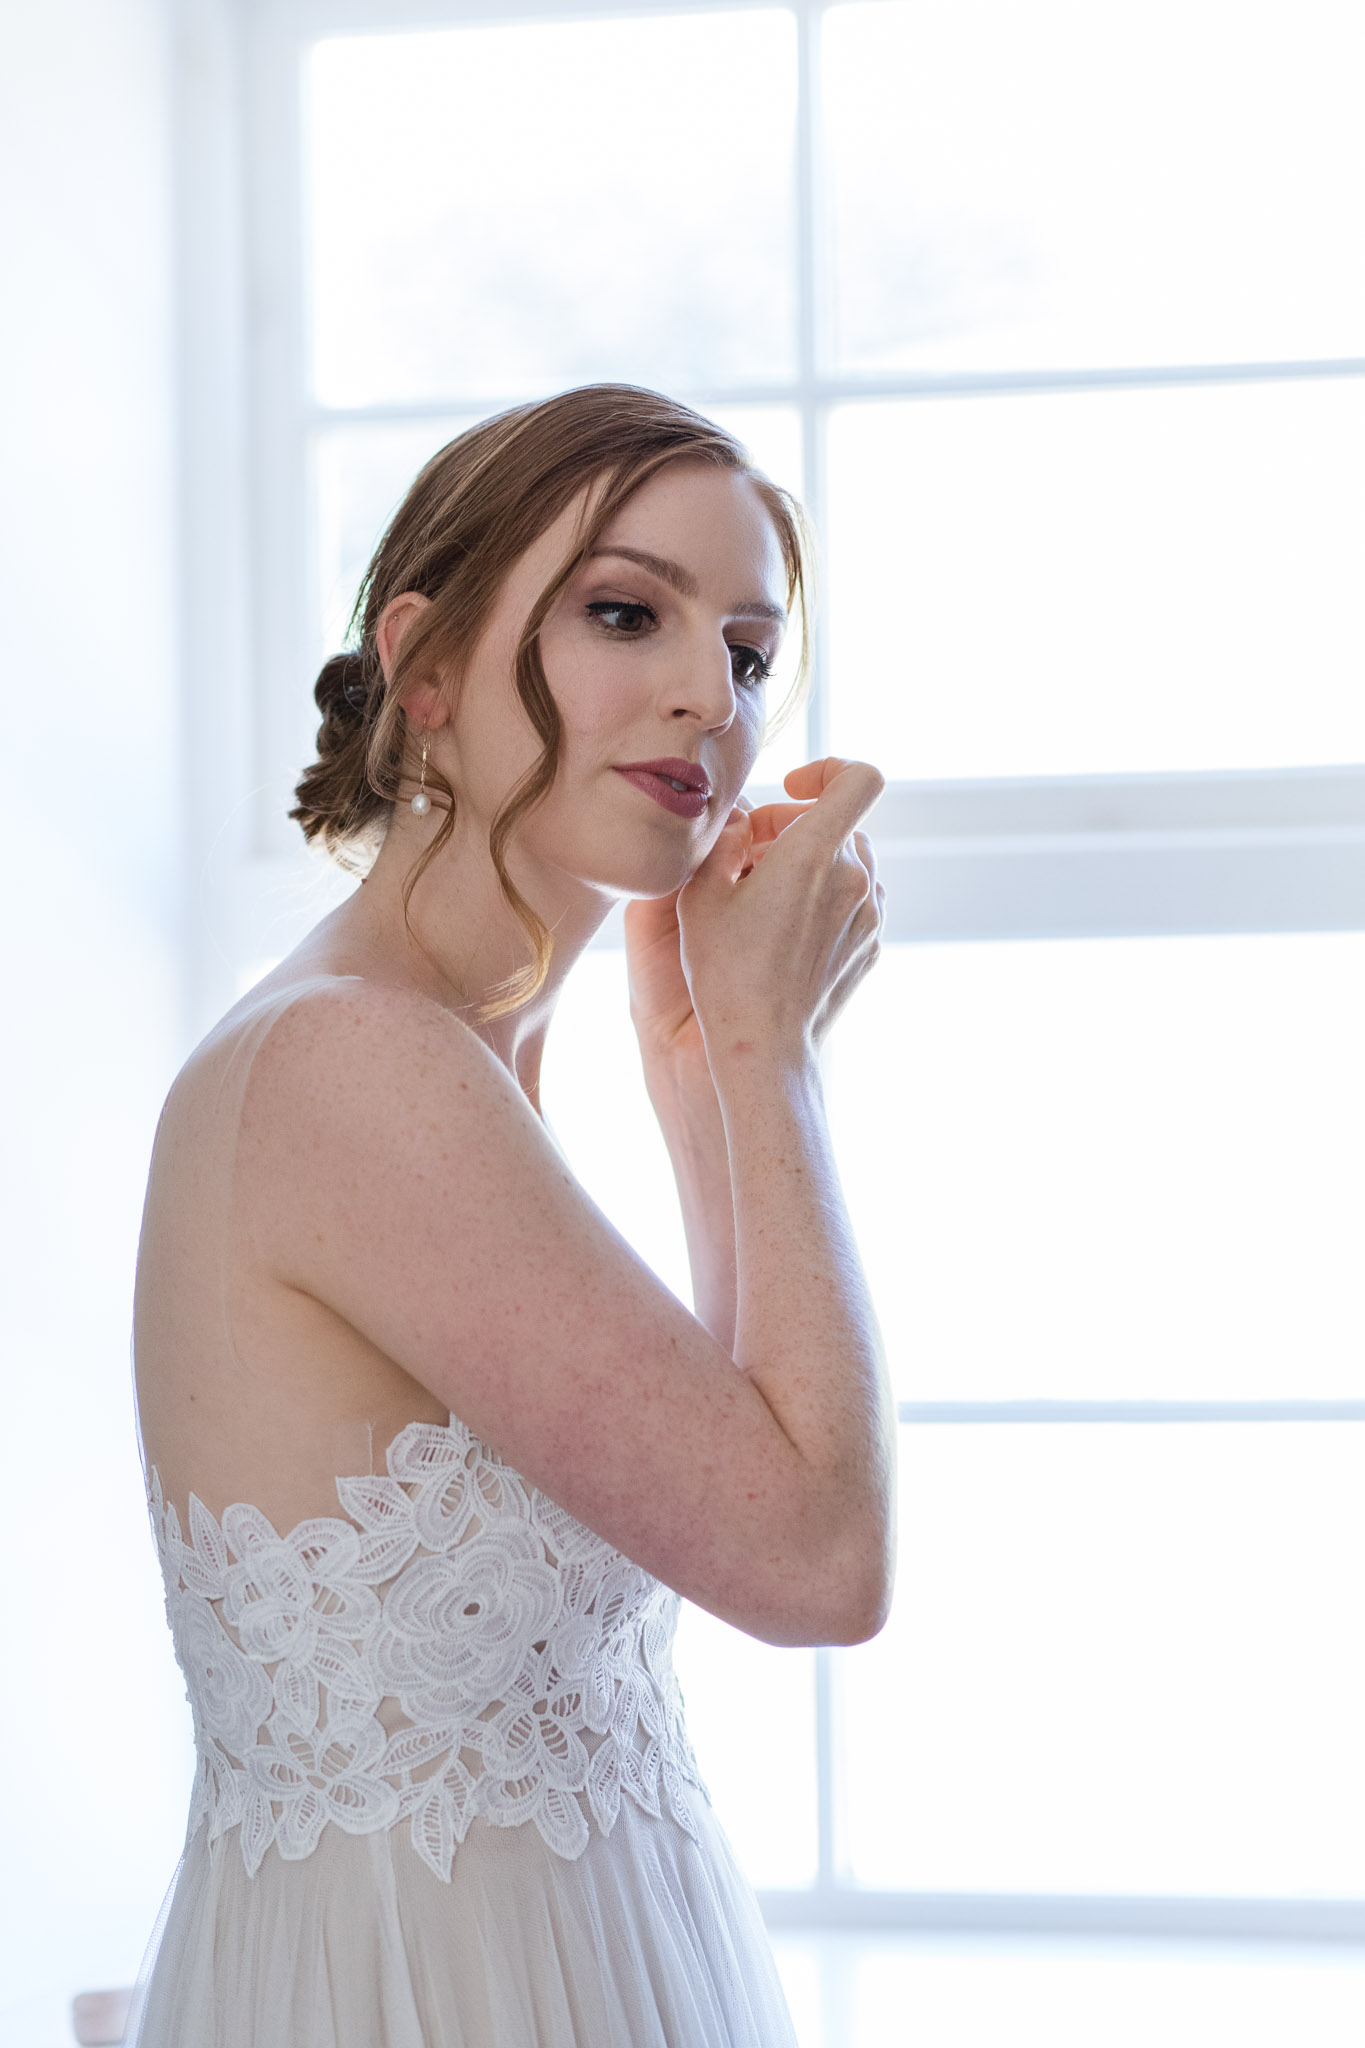 Bride by window putting in earring - Wedding photographer aberdeenshire, aberdeen, huntly, scotland - Debbie Dee Photography